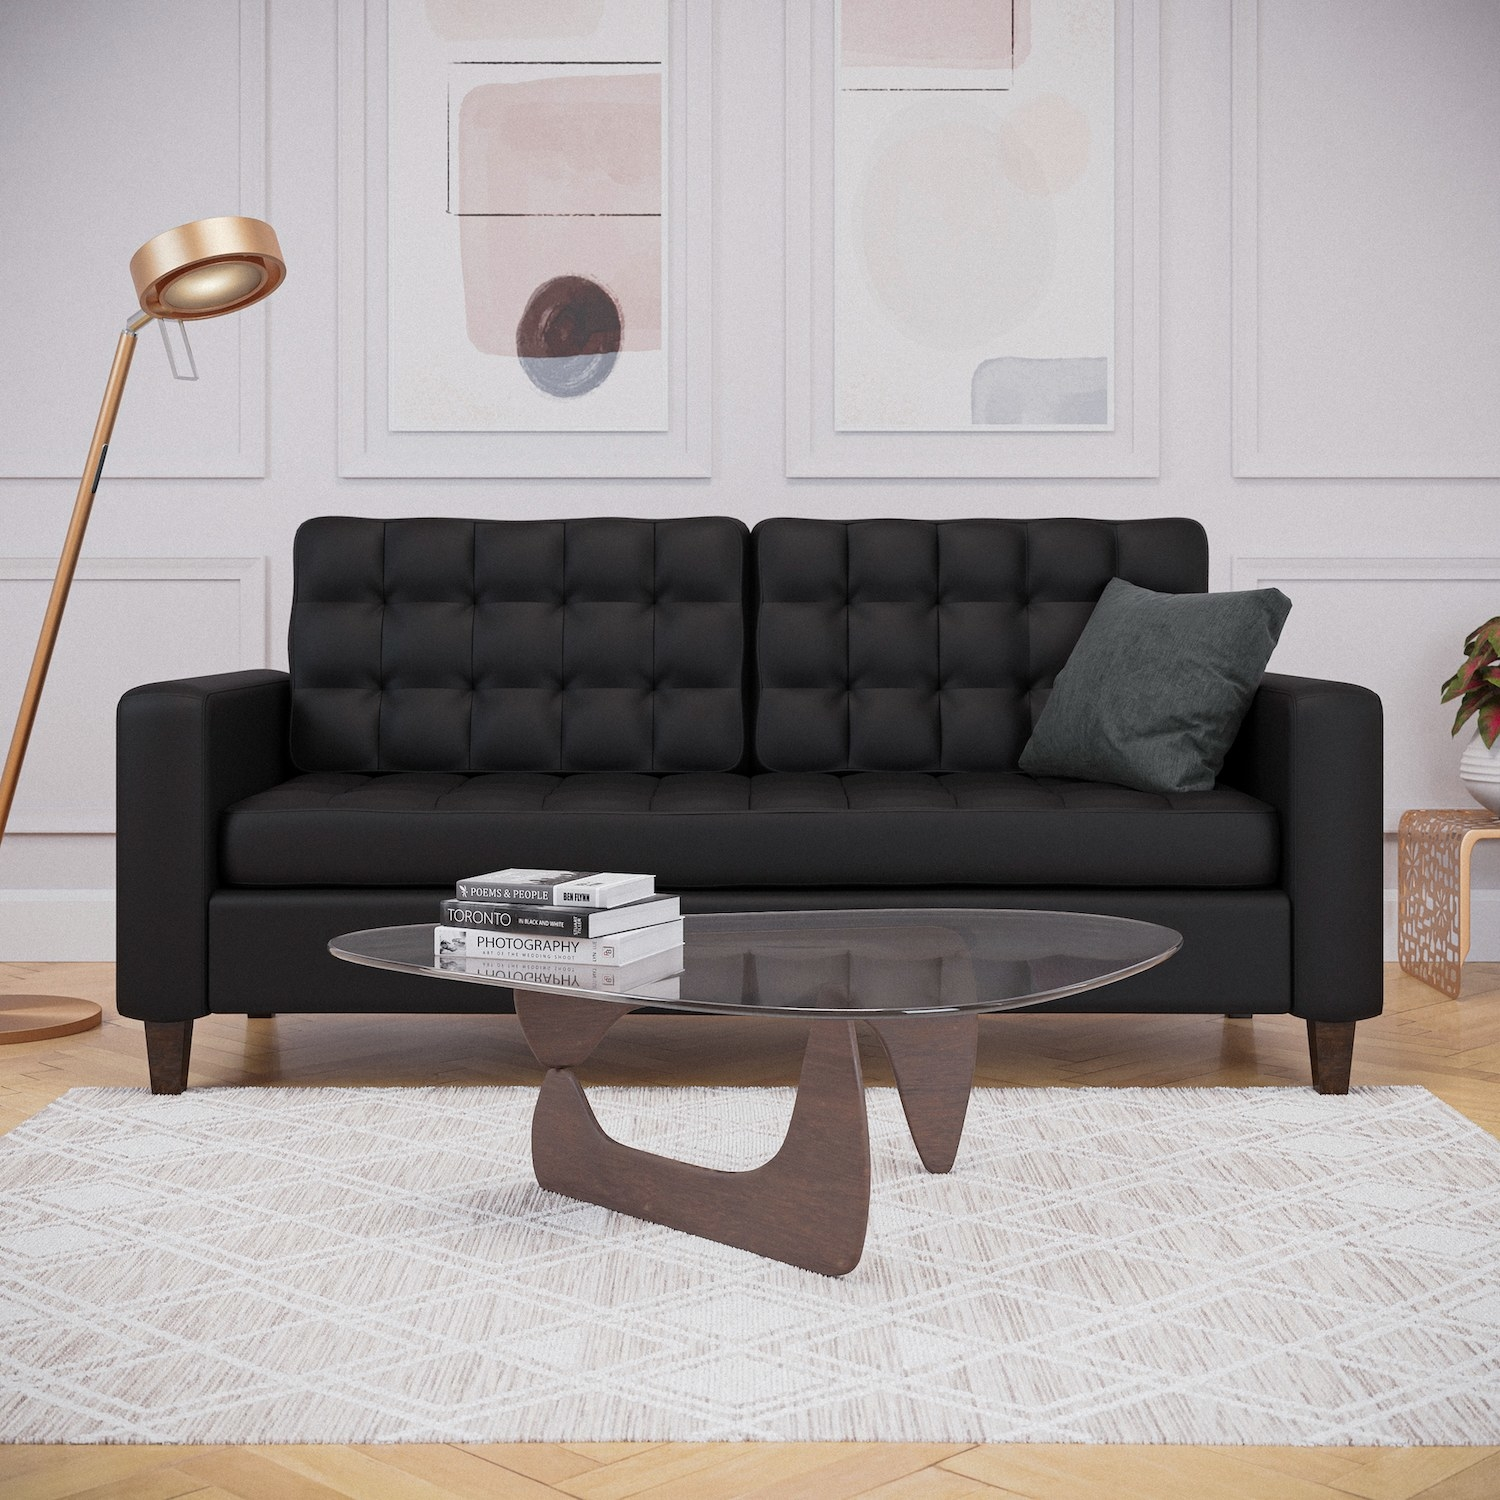 The black sofa with a button tufted seat and back cushion